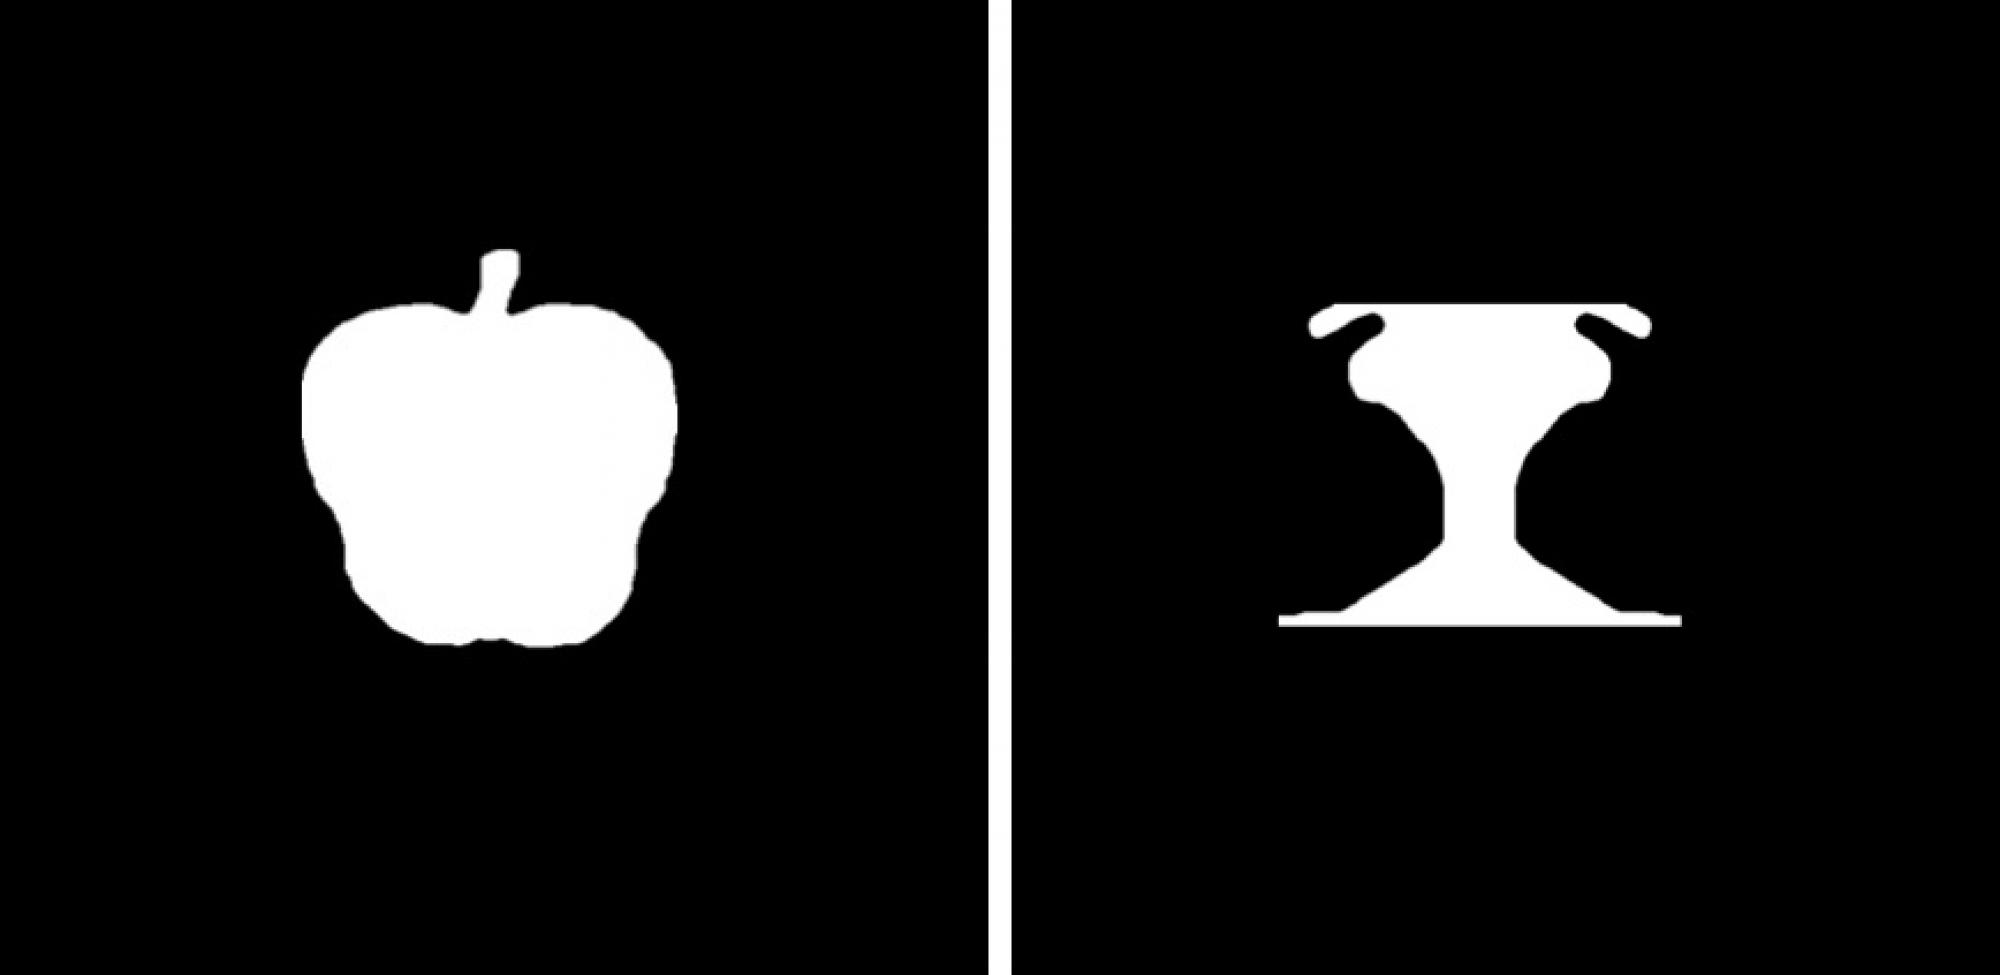 The image on the left depicts a familiar object - an apple - while the one on the right shows a novel object that doesn't suggest anything familiar on the outside of the left and right borders.